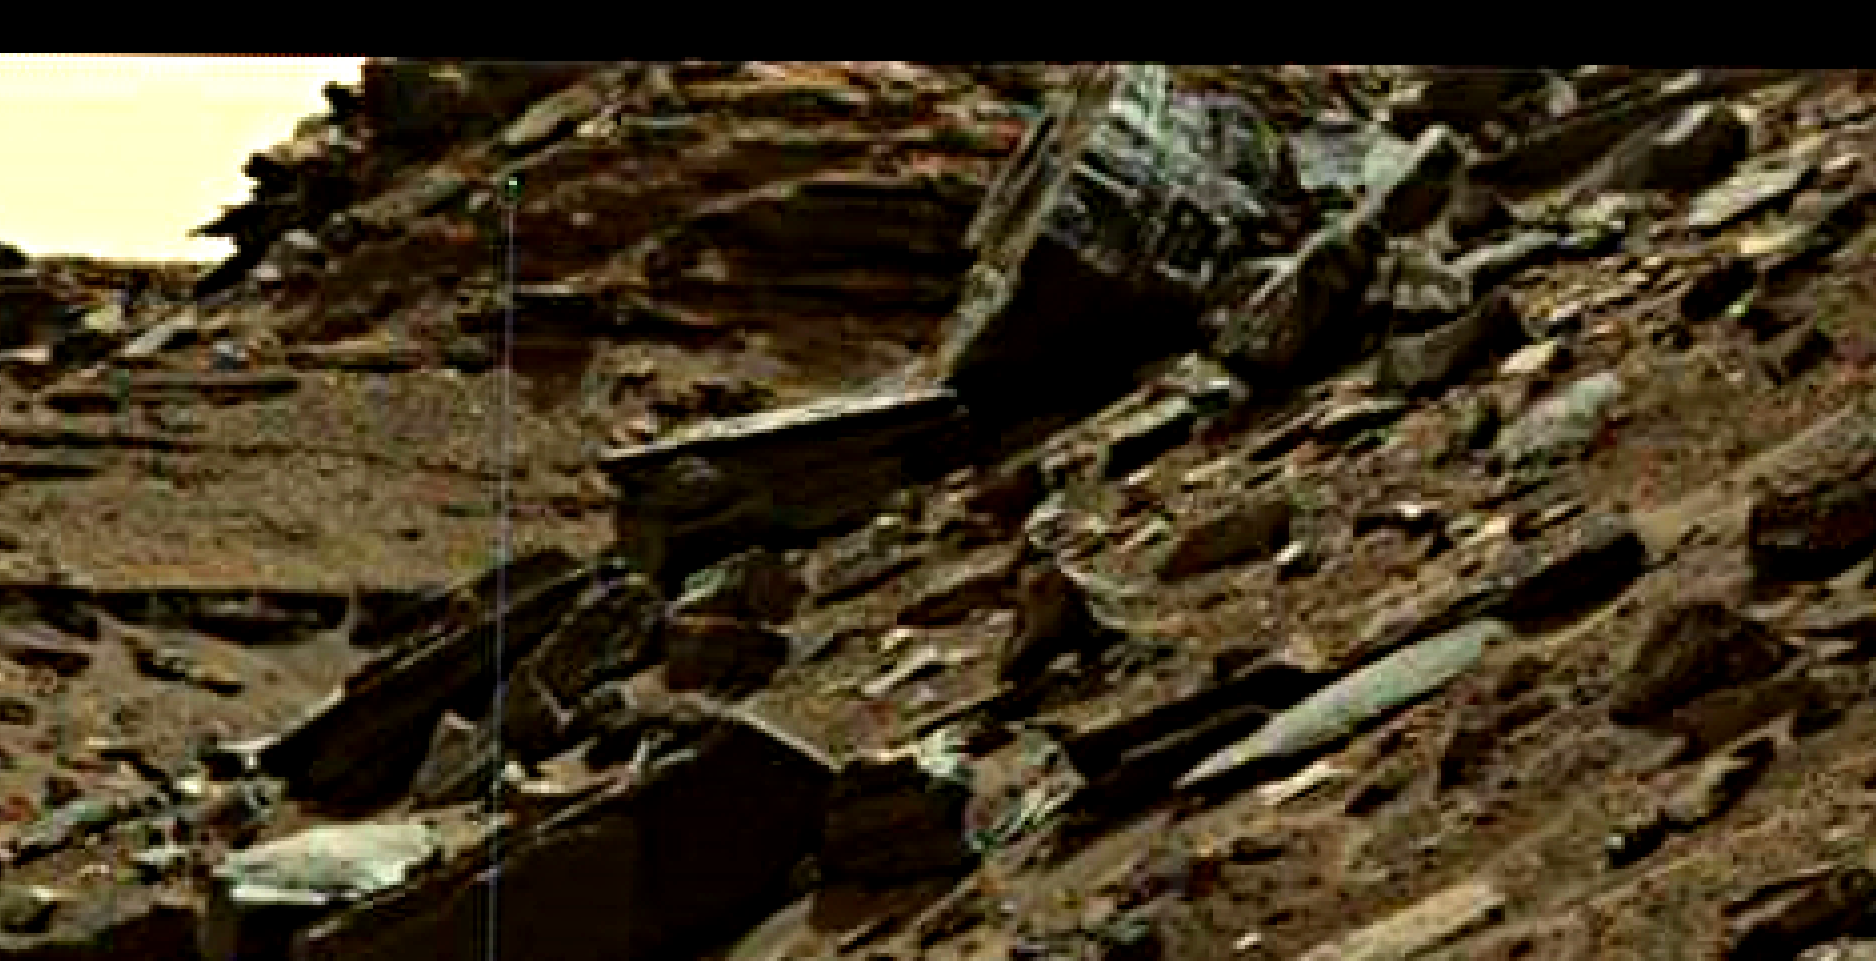 mars-sol-1452-anomaly-artifacts-1-was-life-on-mars